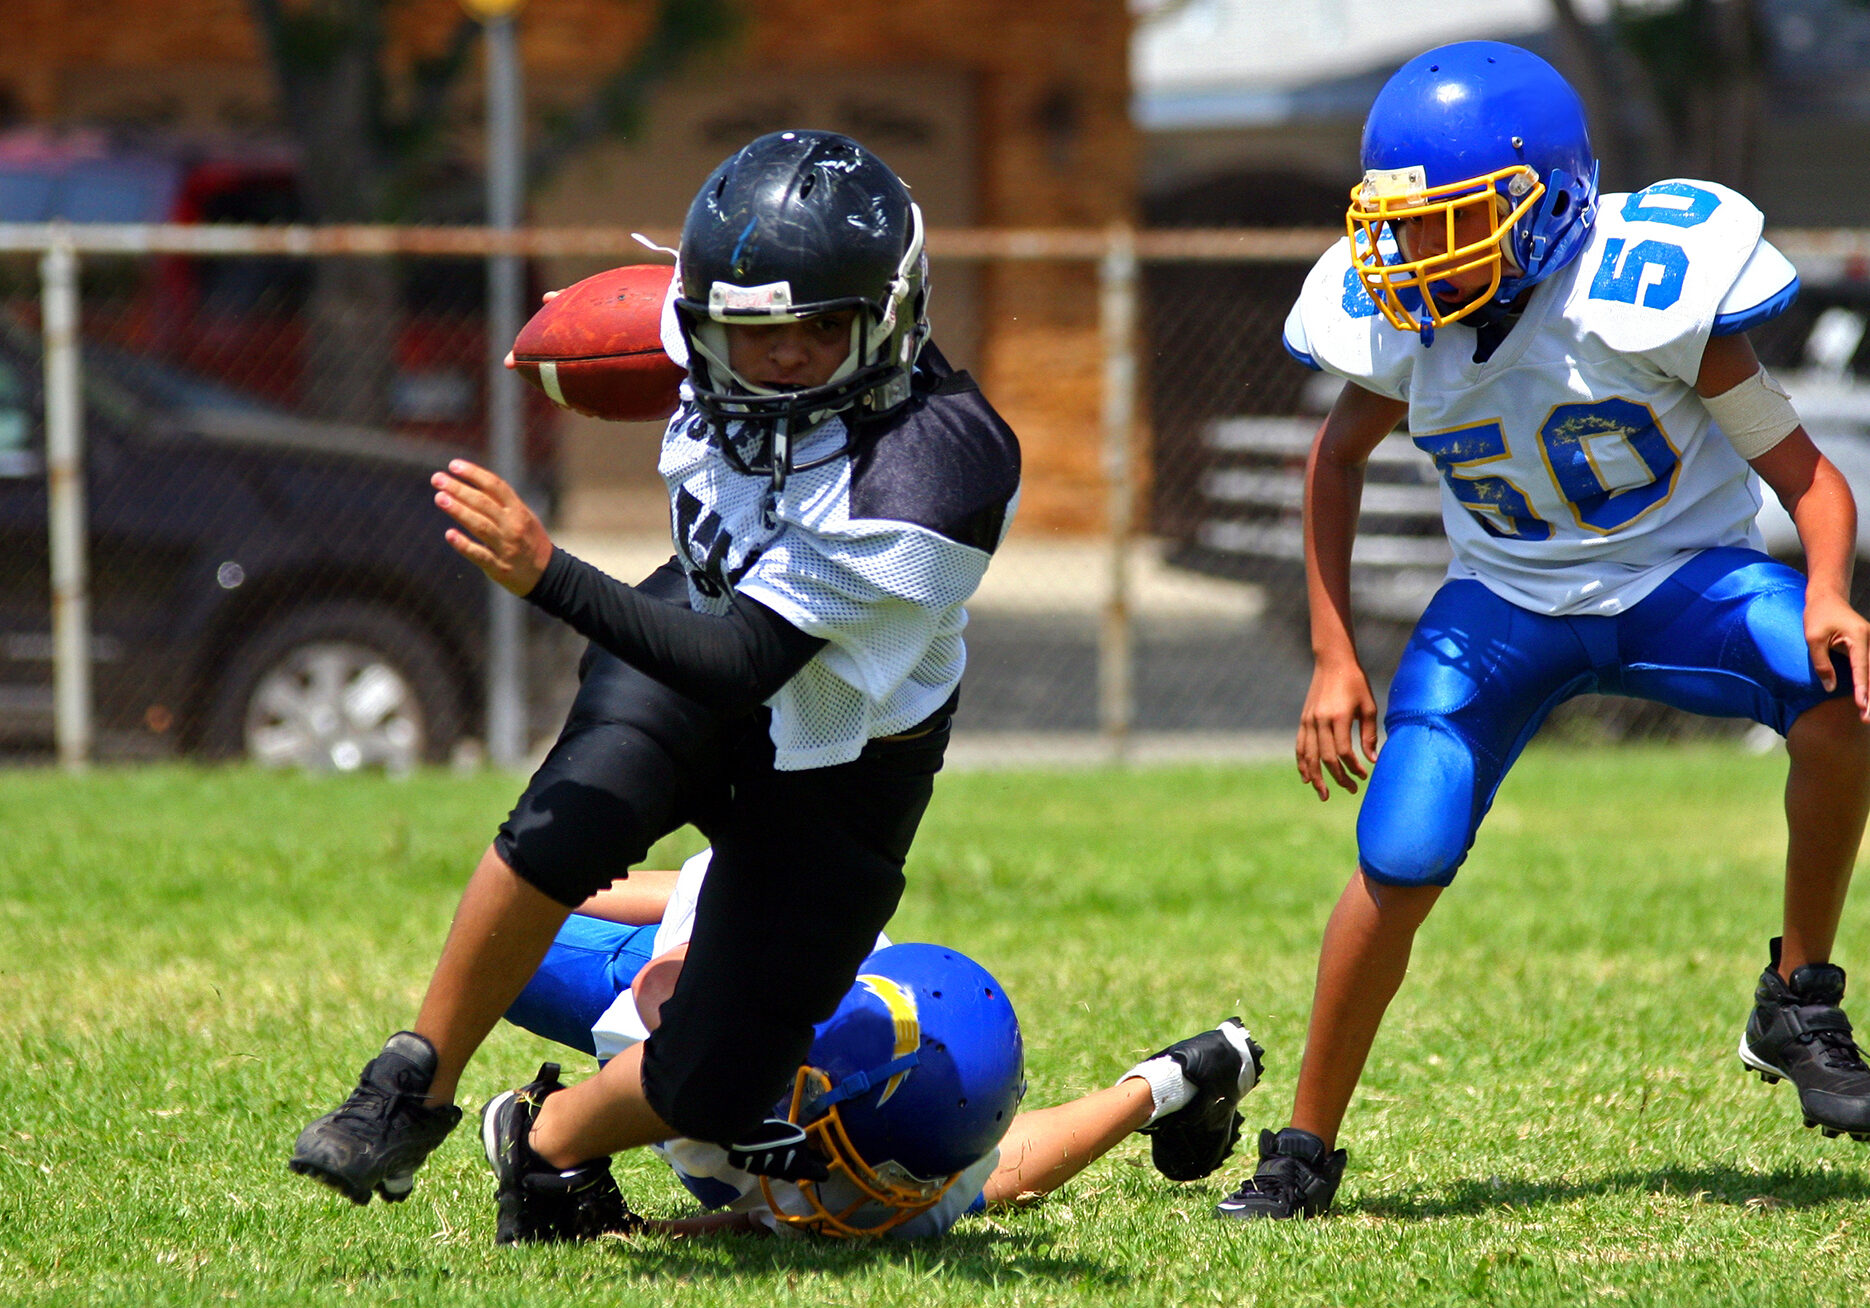 Young american football player running back breaking away from an attempted tackle. All logos and trademarks from uniforms, helmets and cleats have been removed in Photoshop